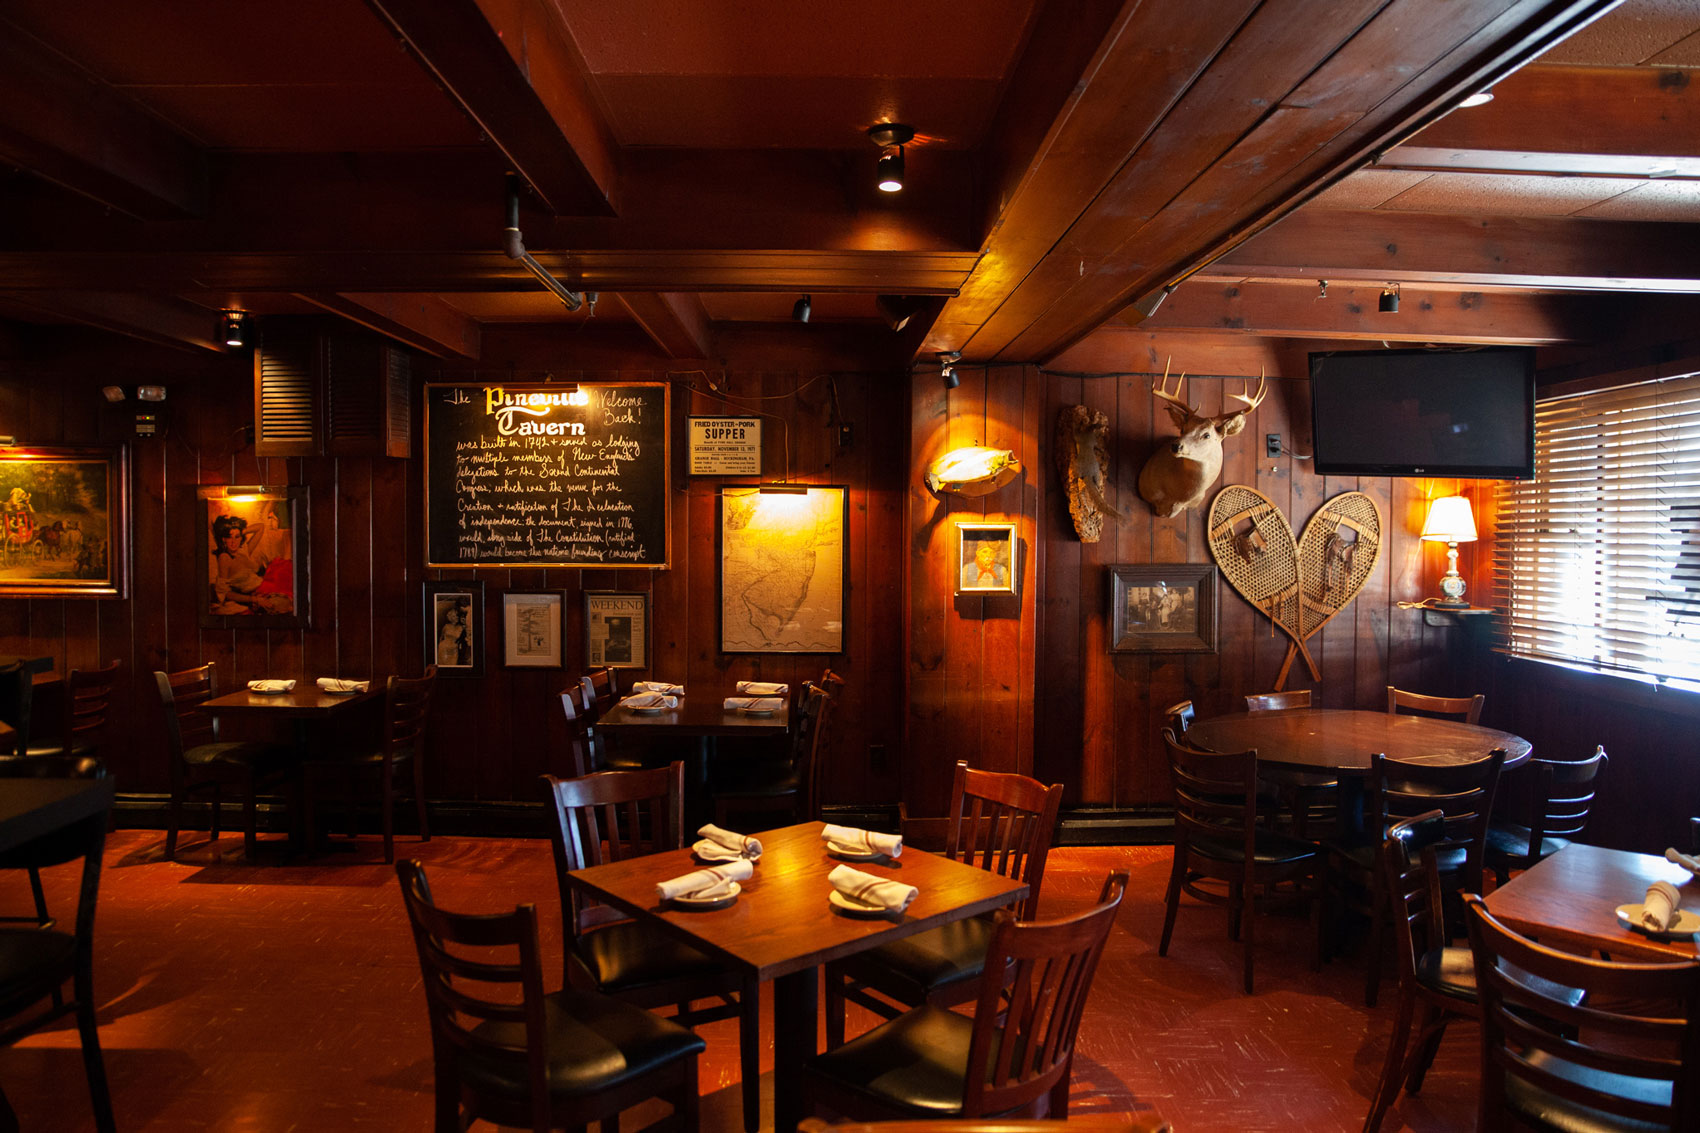 The clean, refined interior of the Pineville Tavern.